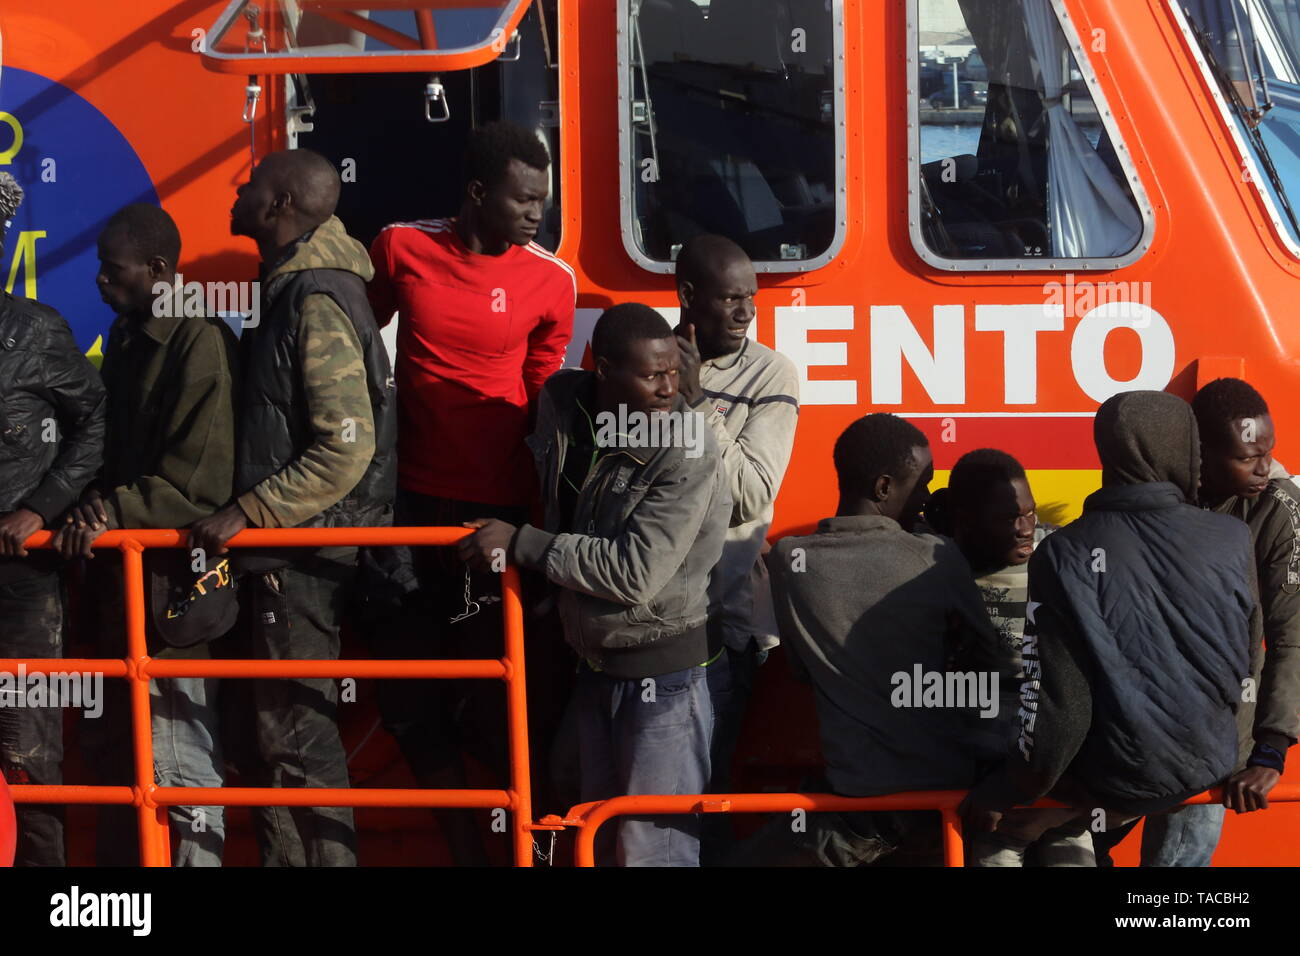 May 23, 2019 - 23 may (Malaga ) Rescued 74 immigrants from